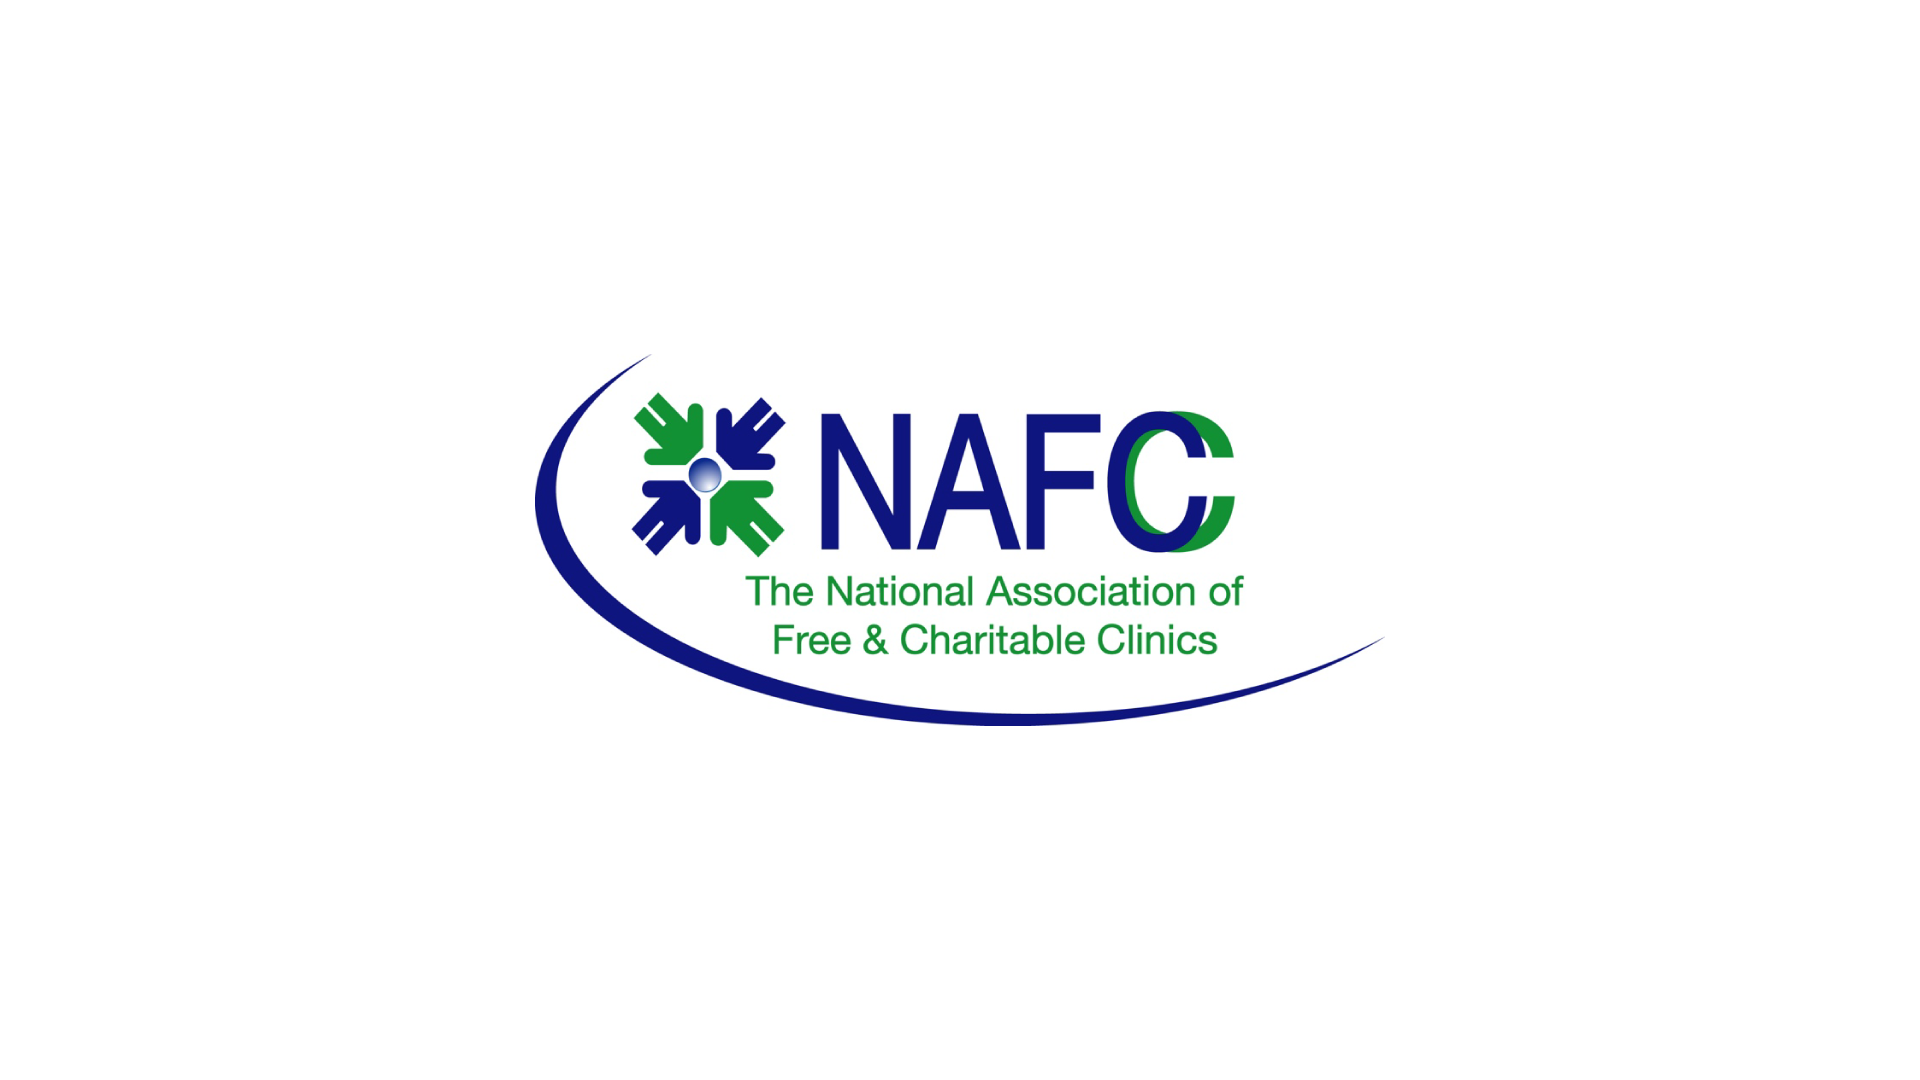 Logo of the National Association of Free & Charitable Clinics